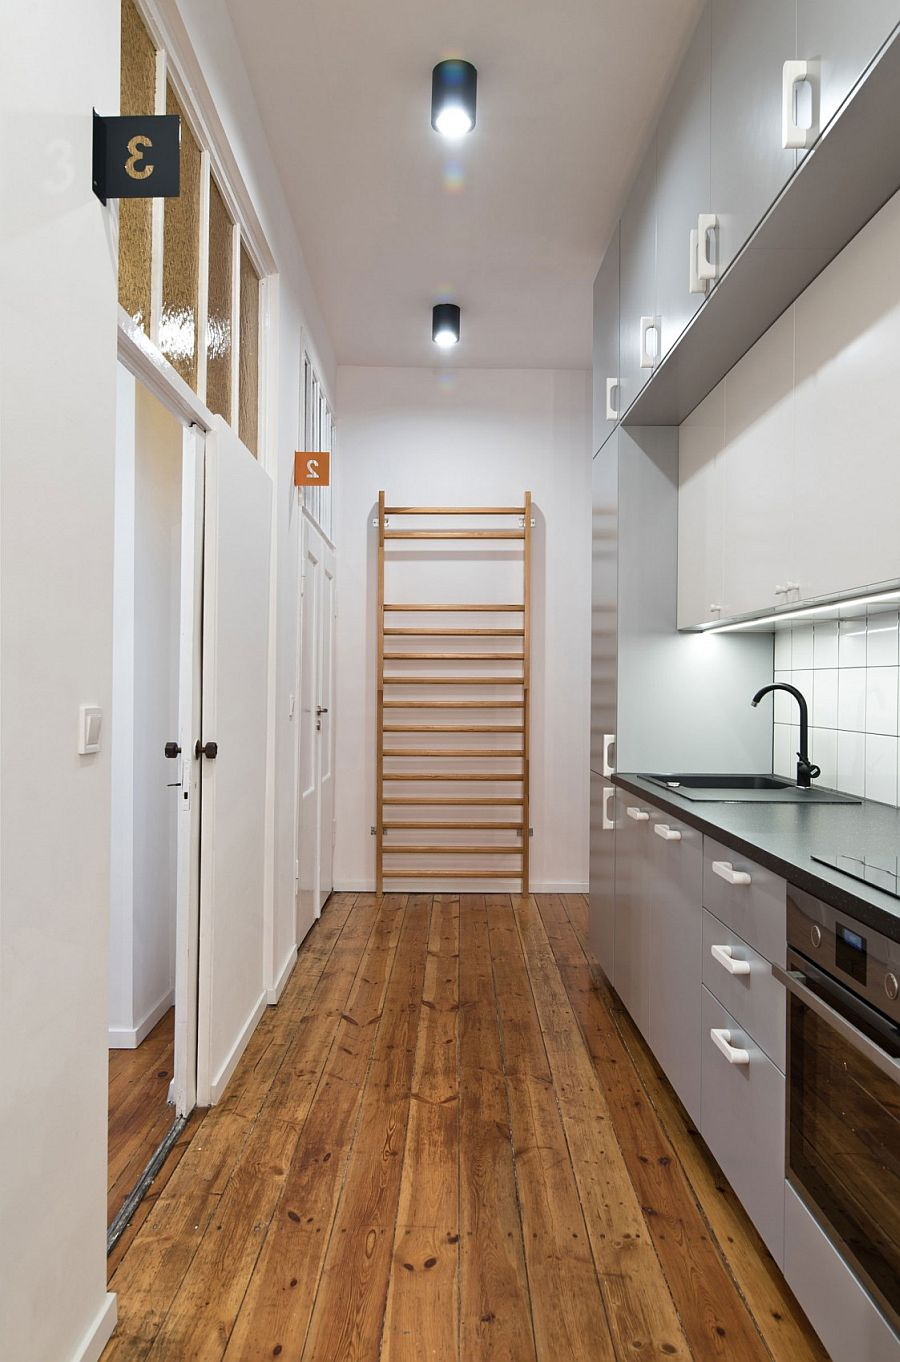 Even the long hallway can be turned into kitchen in the tiny apartment using a smart counter